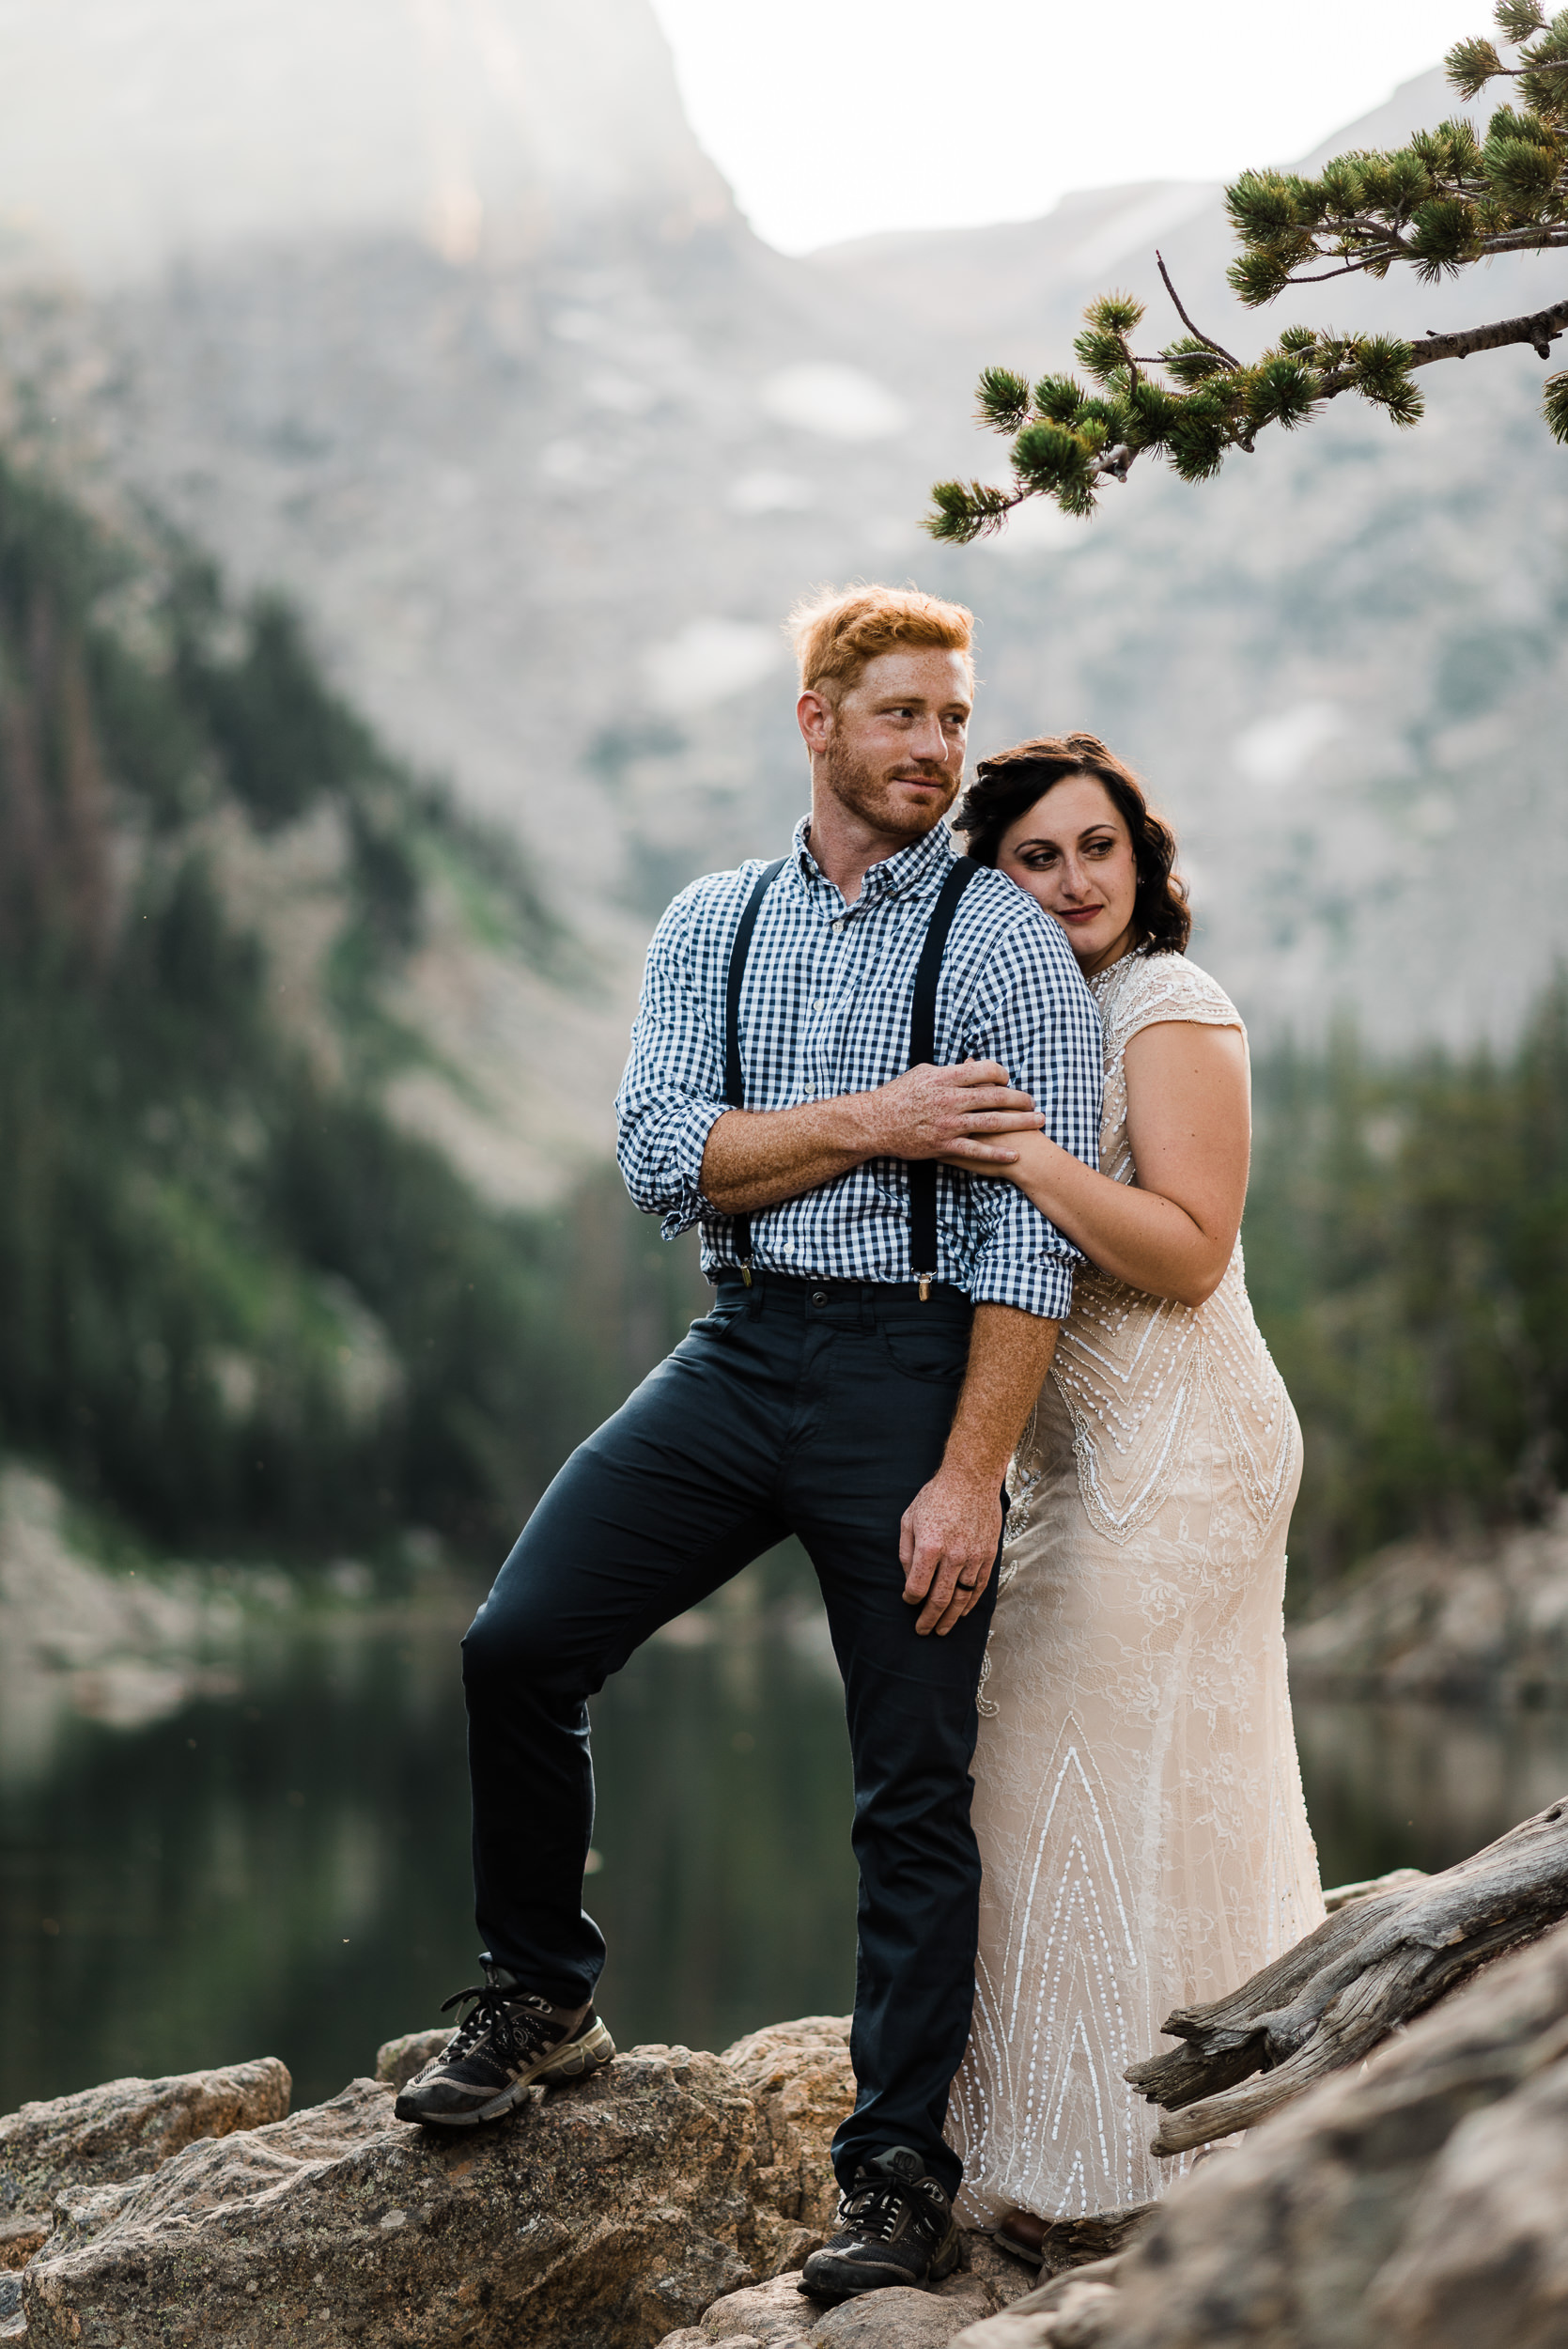 20180724-Colorado-Rocky-Mountain-Elopement-Katie-Corey-018.jpg